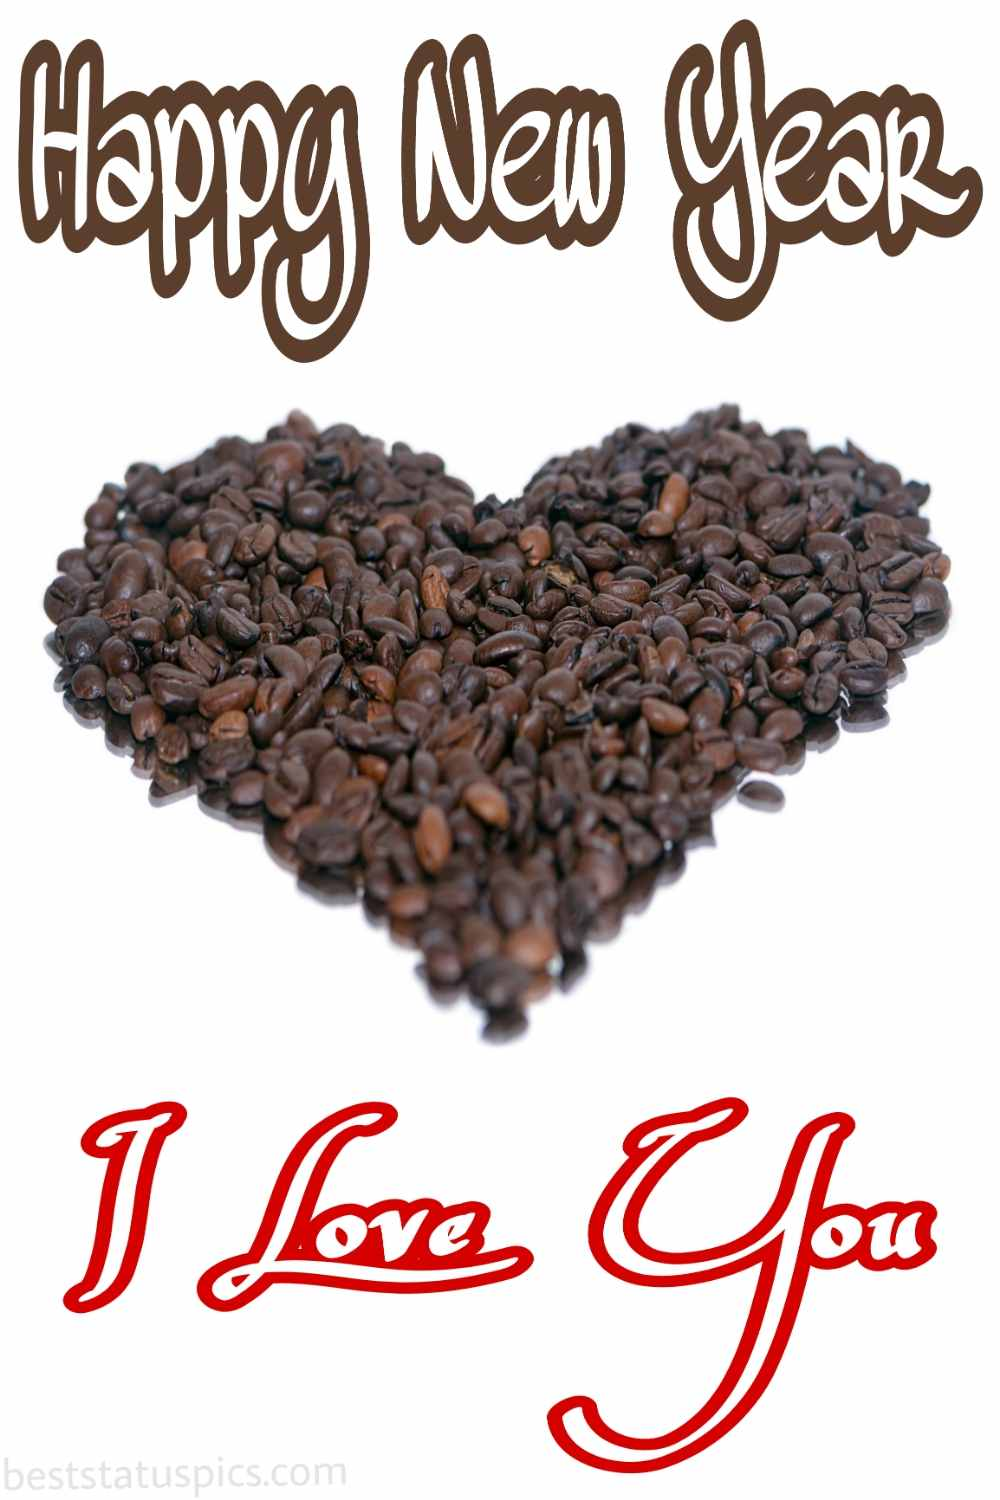 Happy new year 2022 and I love you images with coffee and love heart for boyfriend and husband